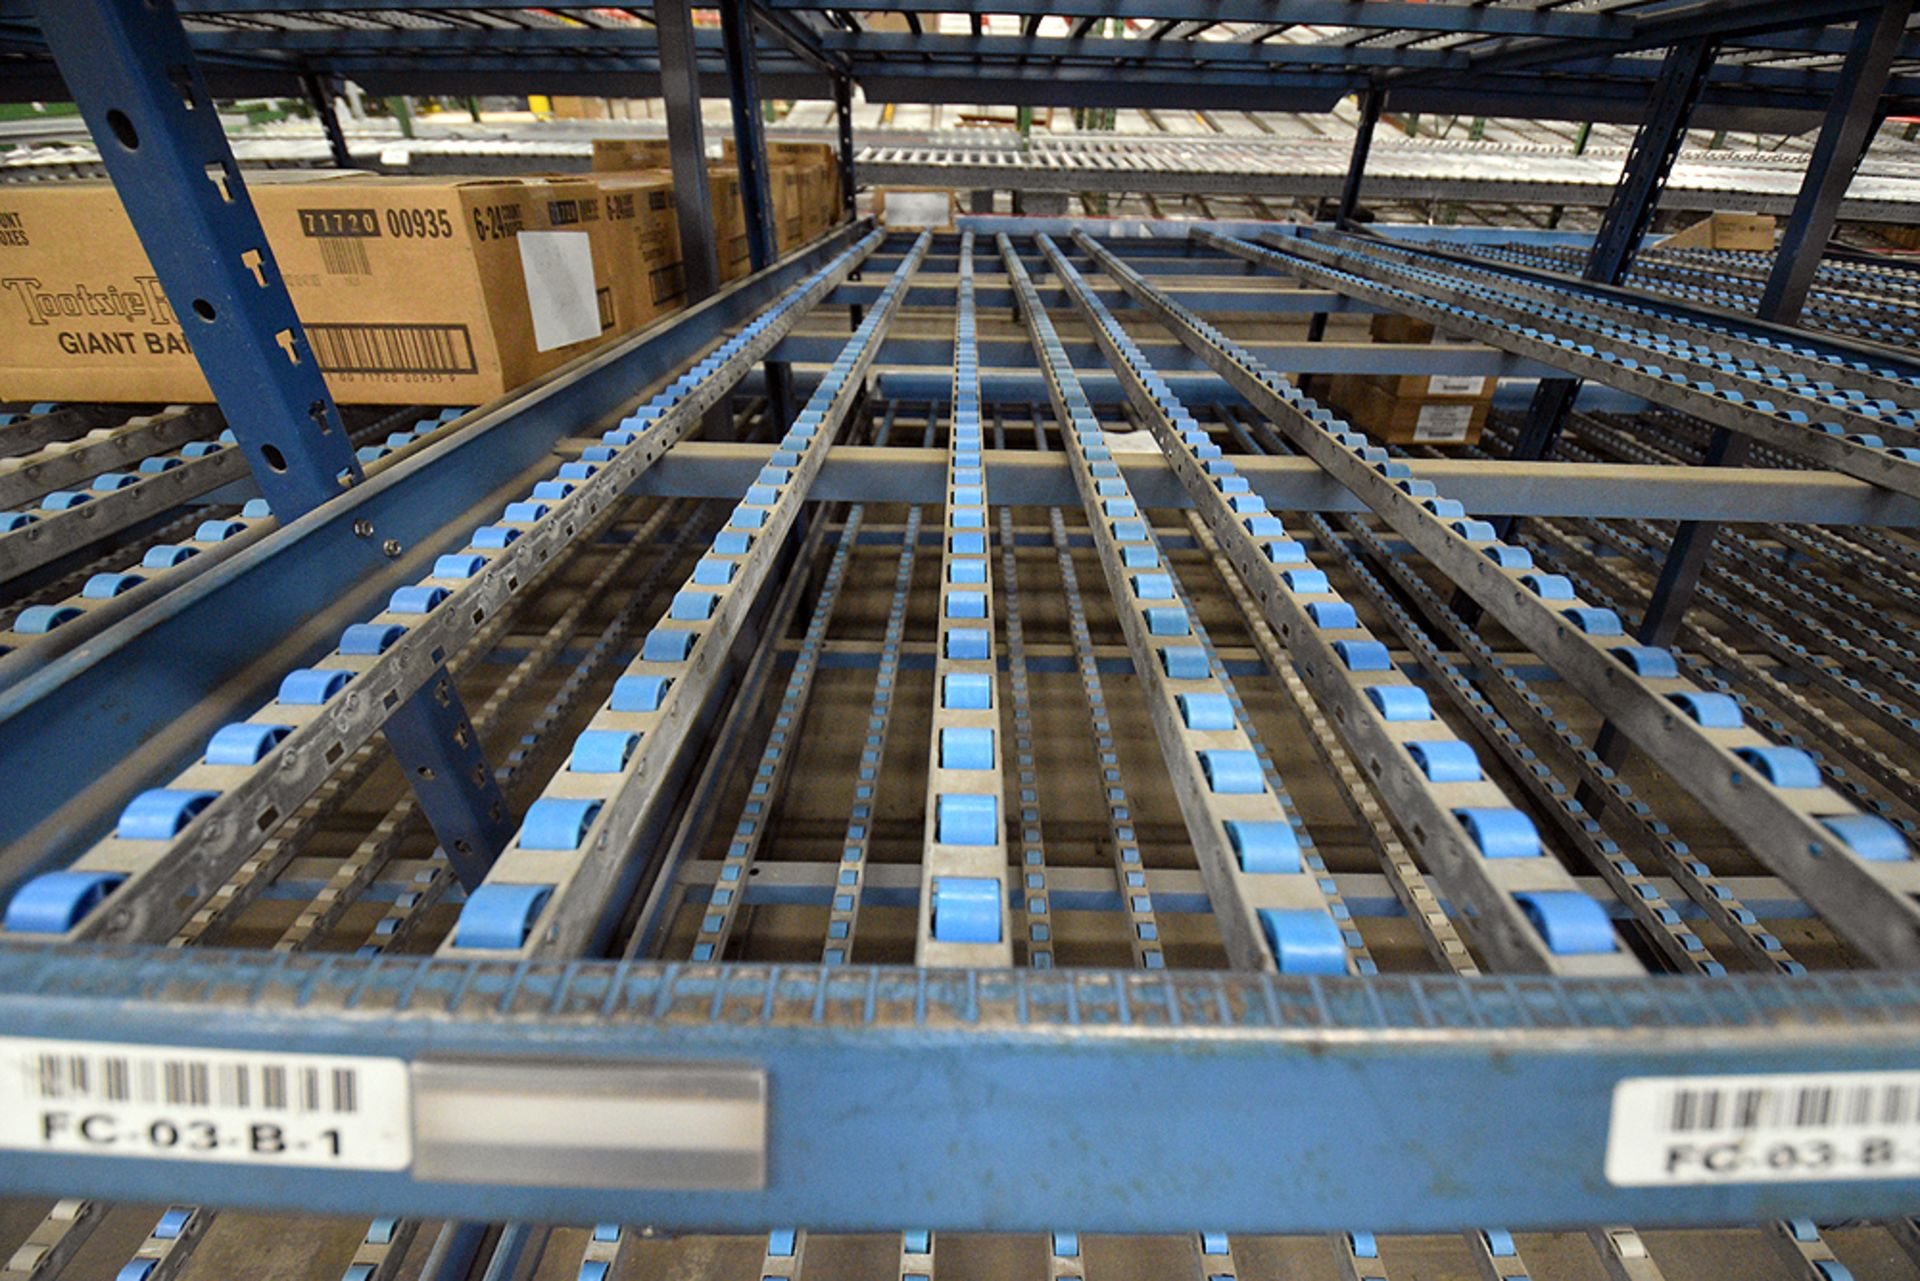 """4-Tier Gravity Fed, Carton Flow Rack (124""""x238""""x95""""H) (108""""x1"""" Rollers) - Image 2 of 3"""